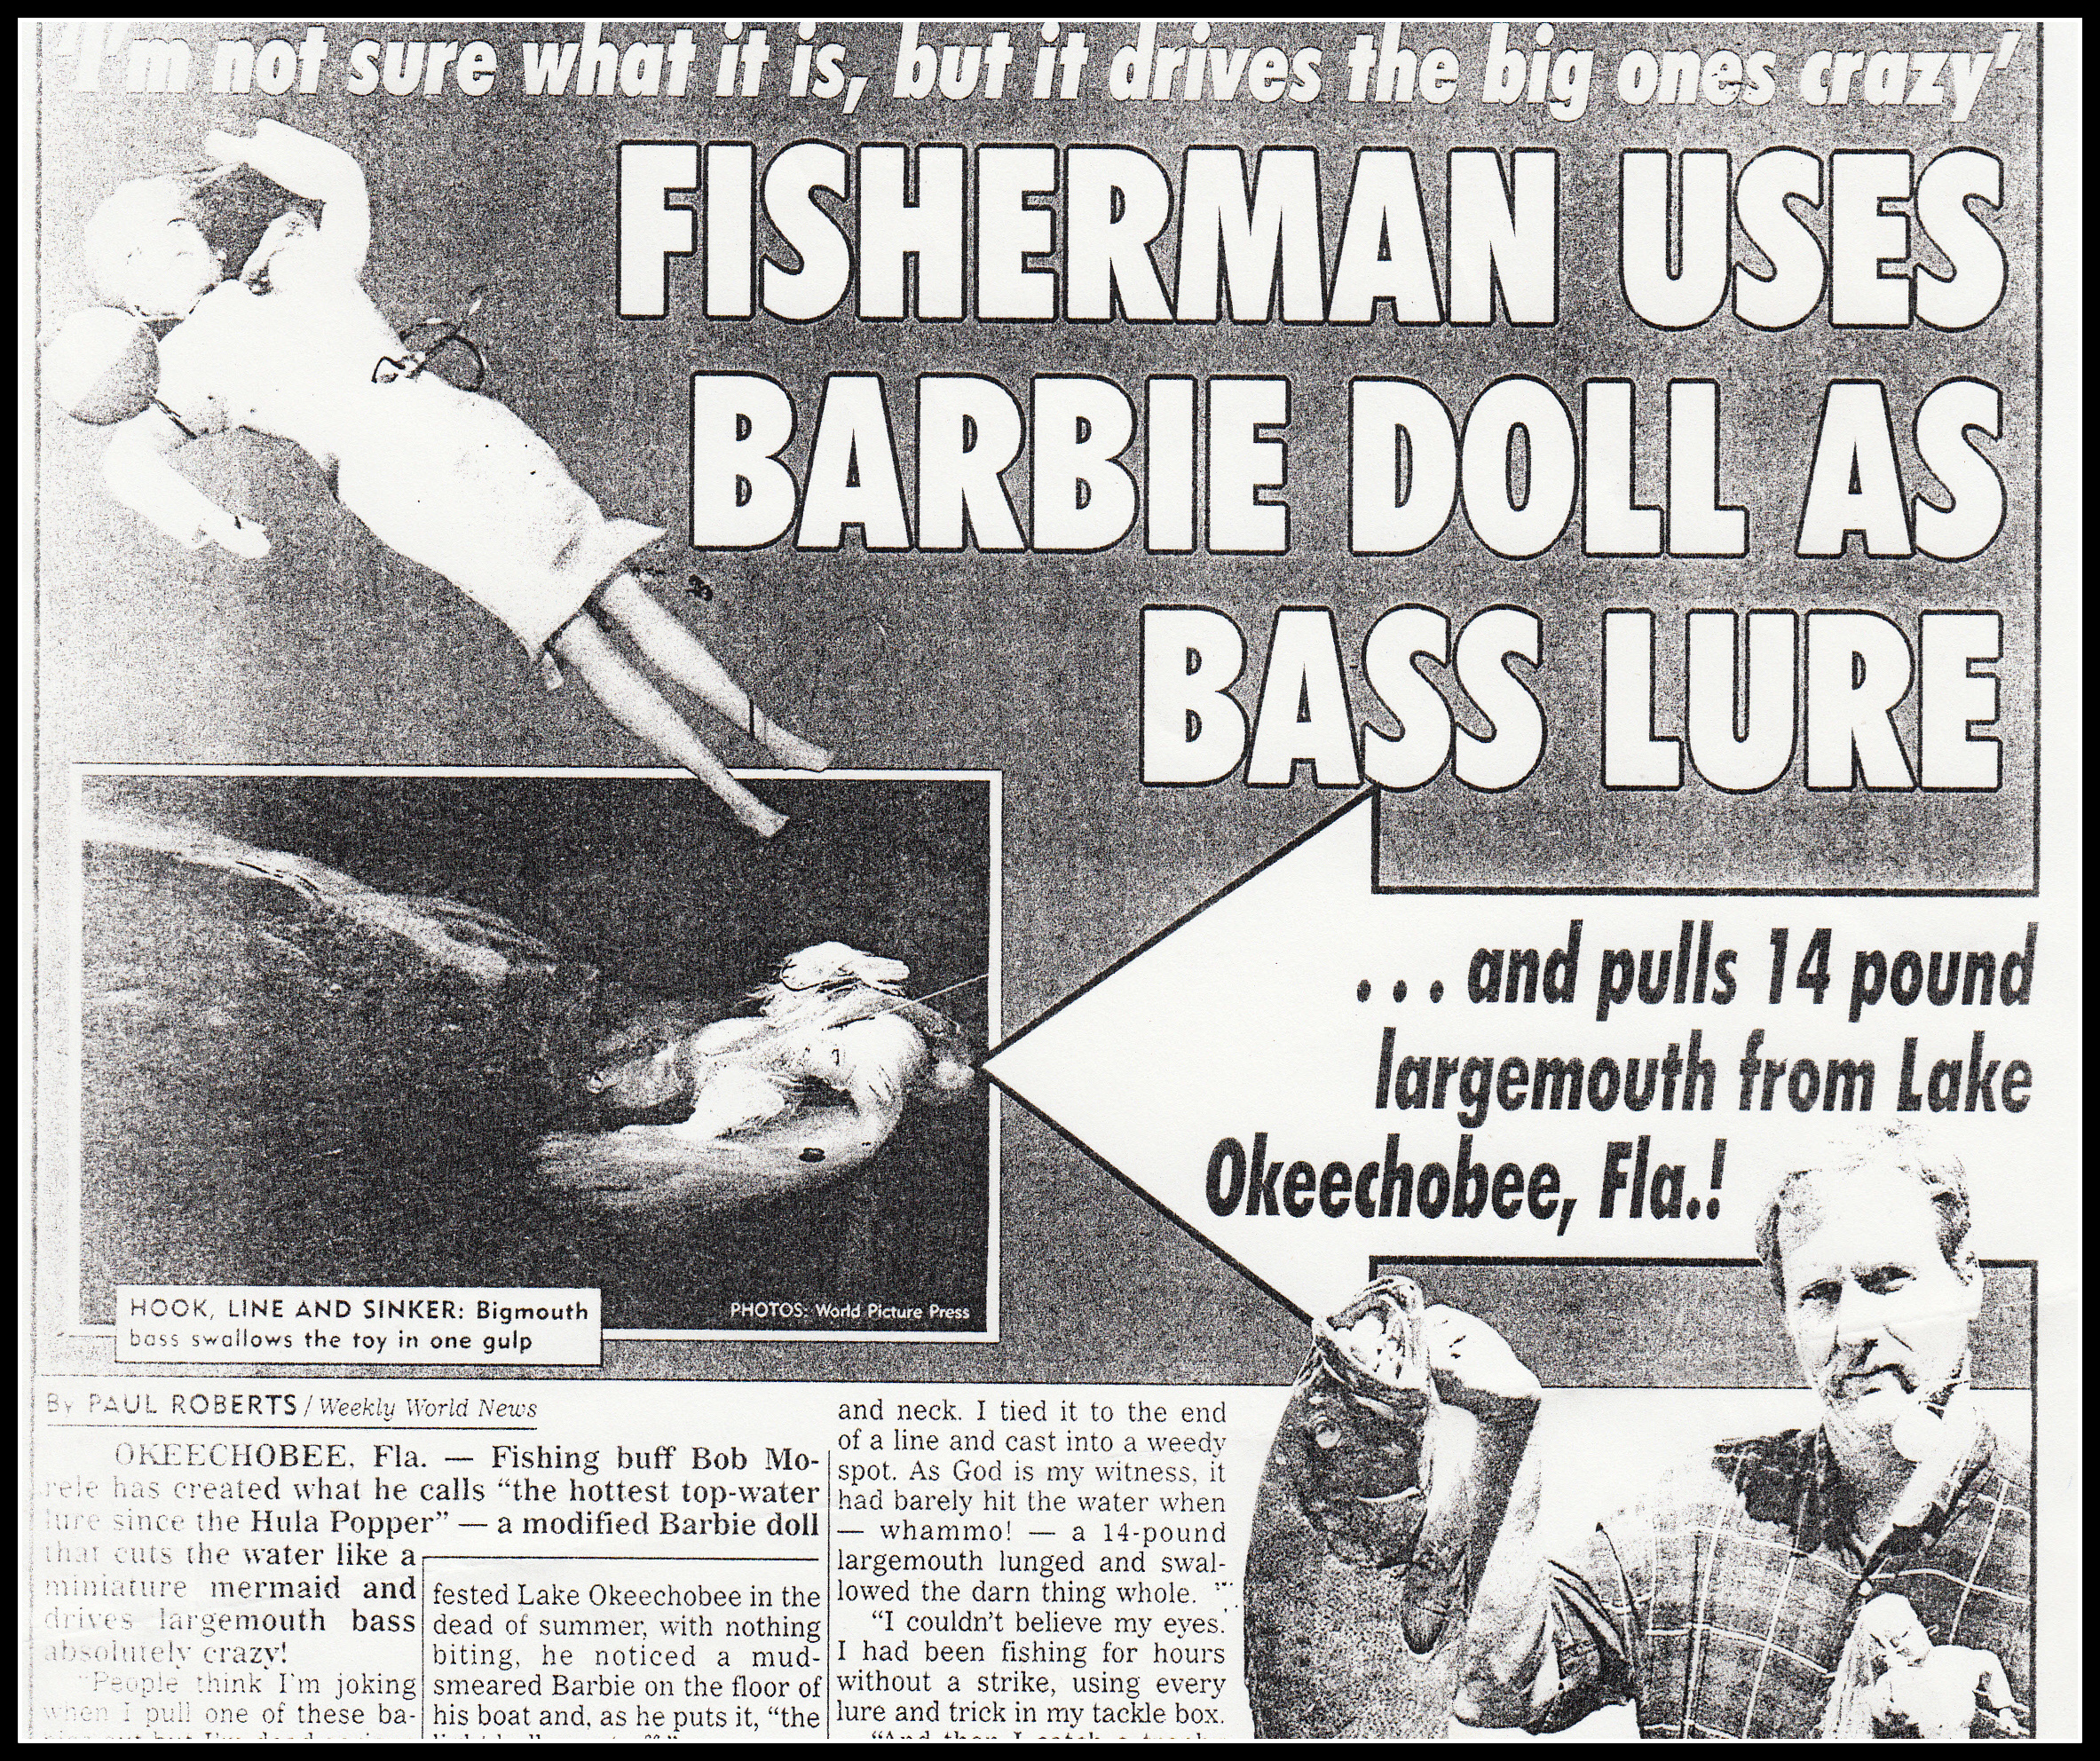 Weekly World News says Barbie used to catch fish!